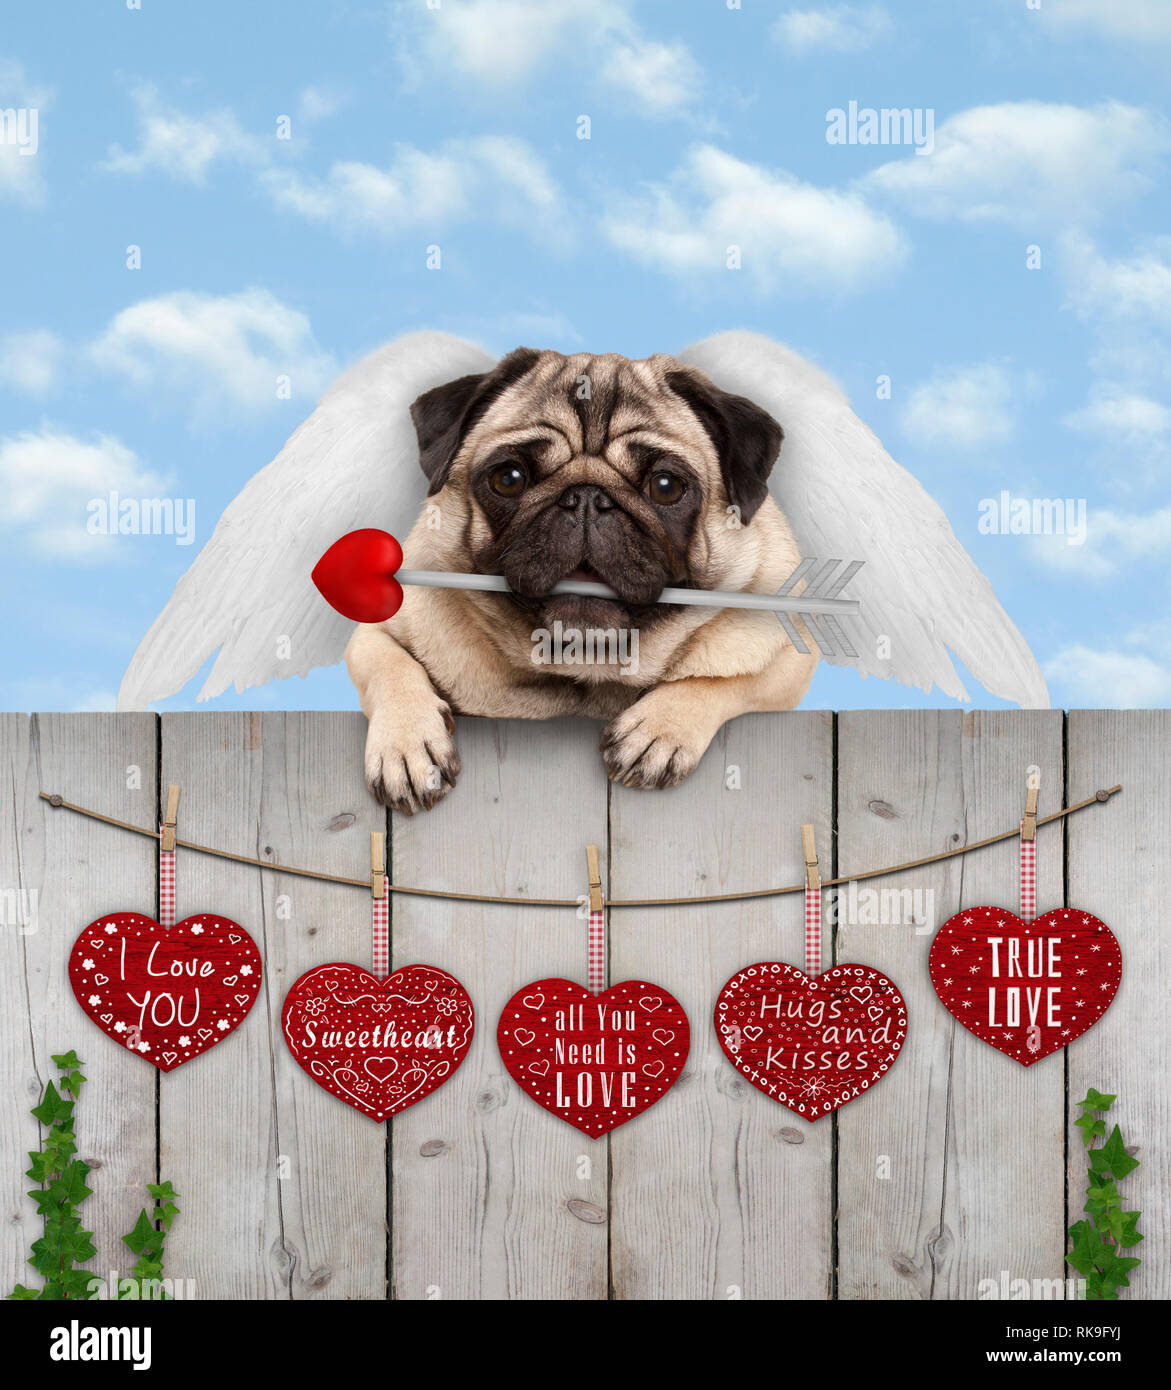 cute pug puppy dog with cupid angel wings and arrow, hanging on fence with wooden hearts with love text, blue sky - Stock Image